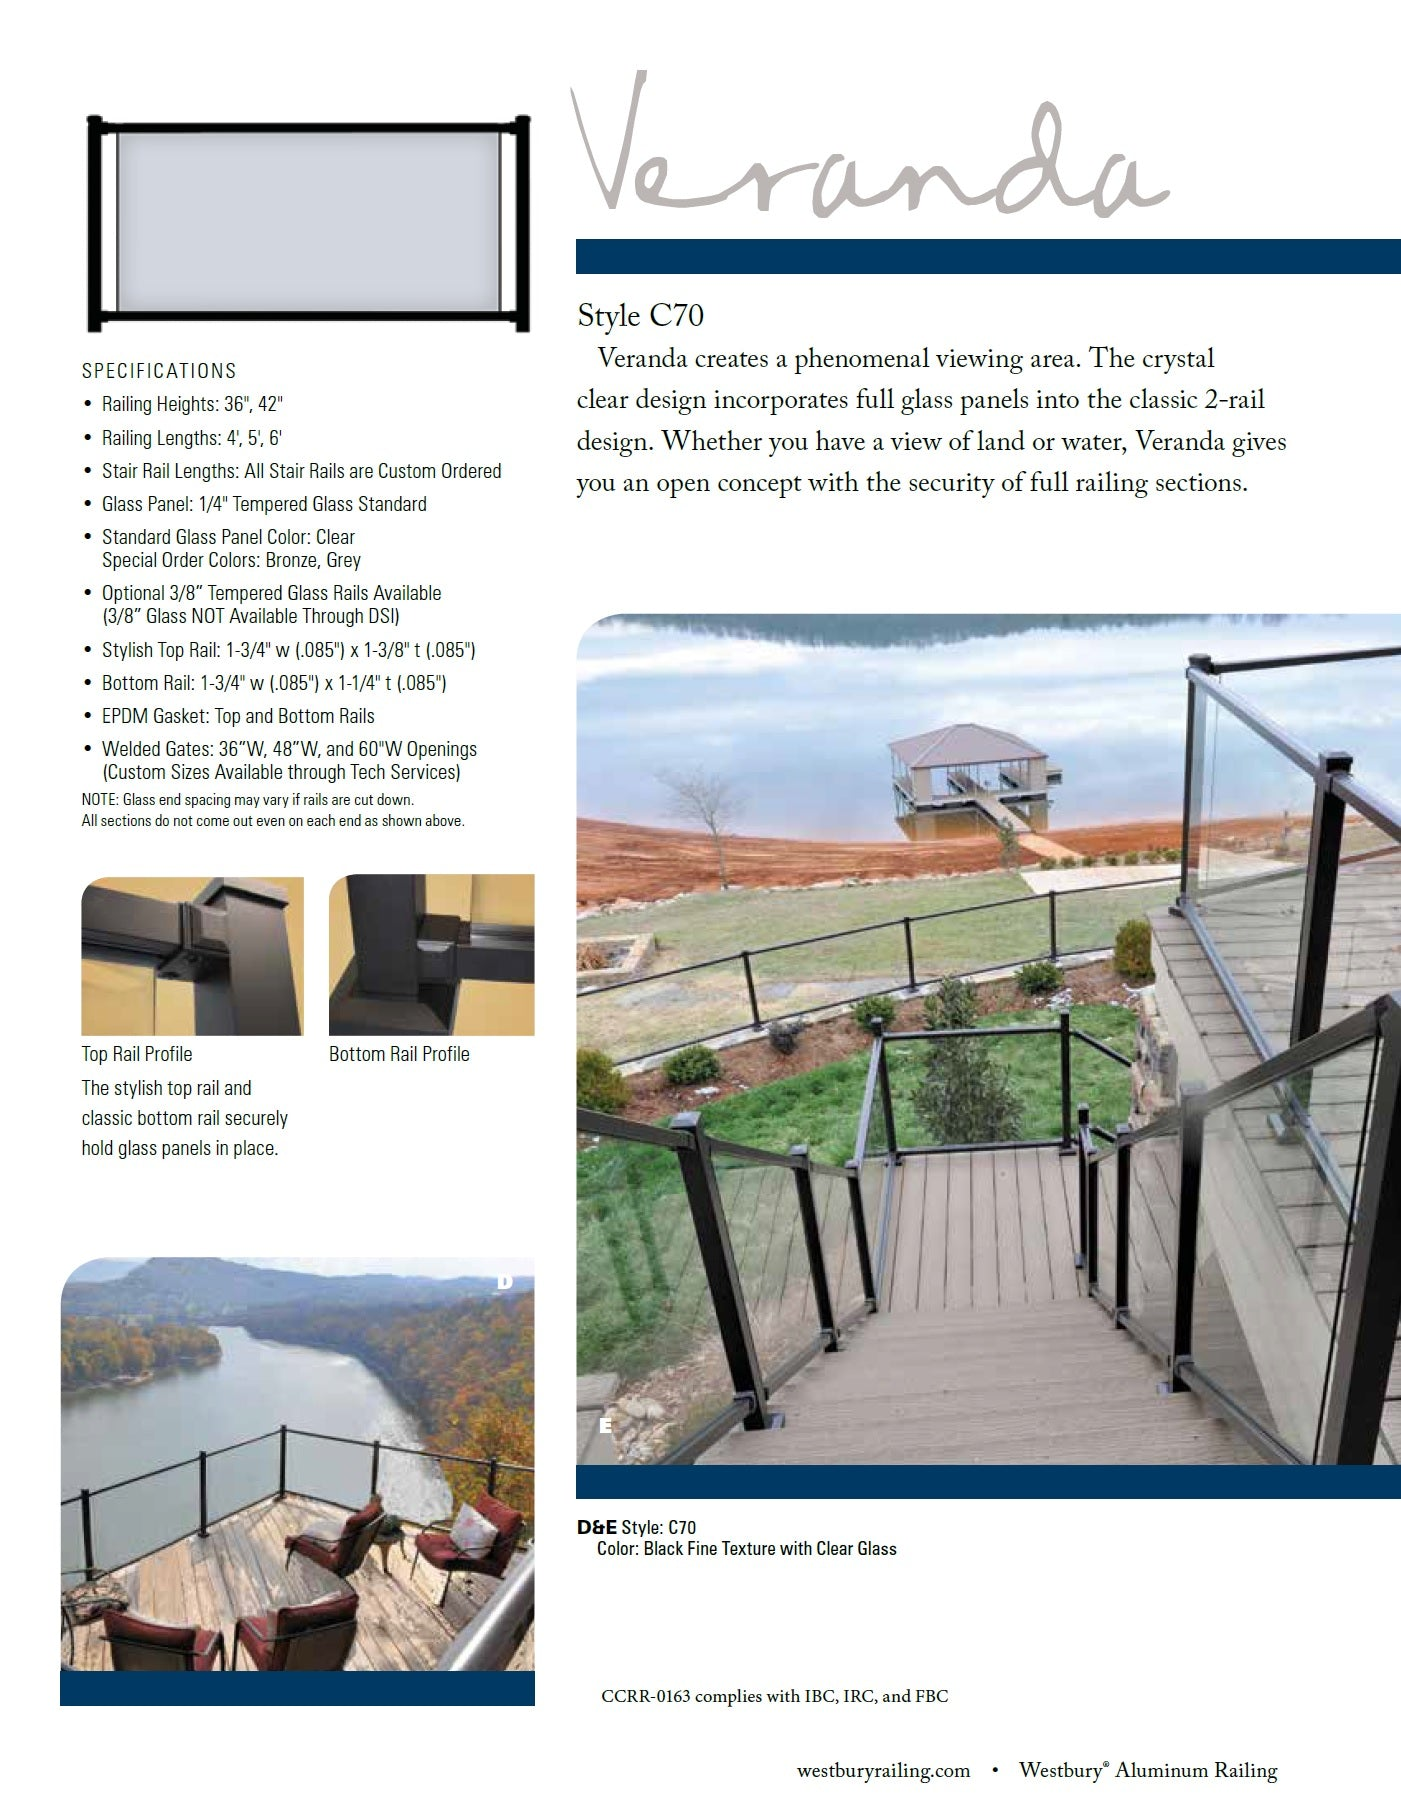 Westbury Veranda C70 Glass Railing System Aluminum and Glass Railing, Glass panel System